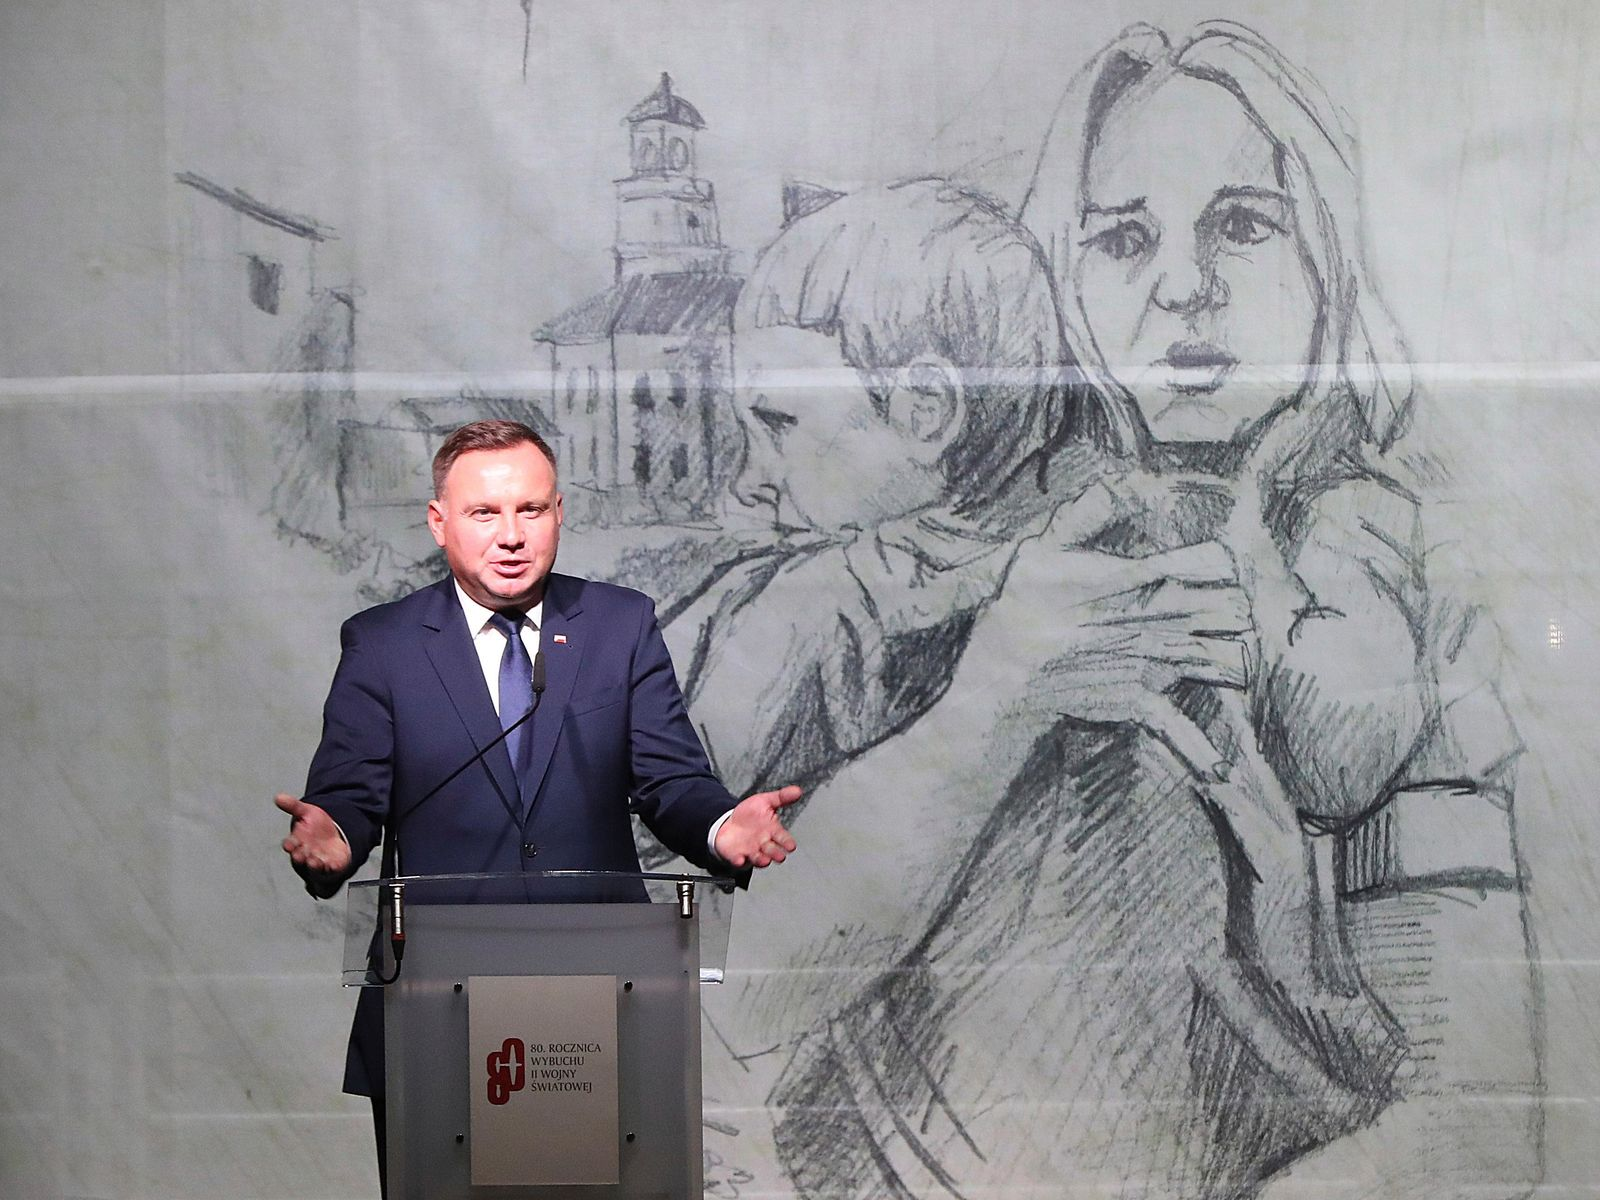 Polish President Andrzej Duda speaks at the commemoration ceremony of the 80th anniversary of the start of World War II, in Wielun, Poland, Sunday, Sept. 1, 2019. (AP Photo/Czarek Sokolowski)